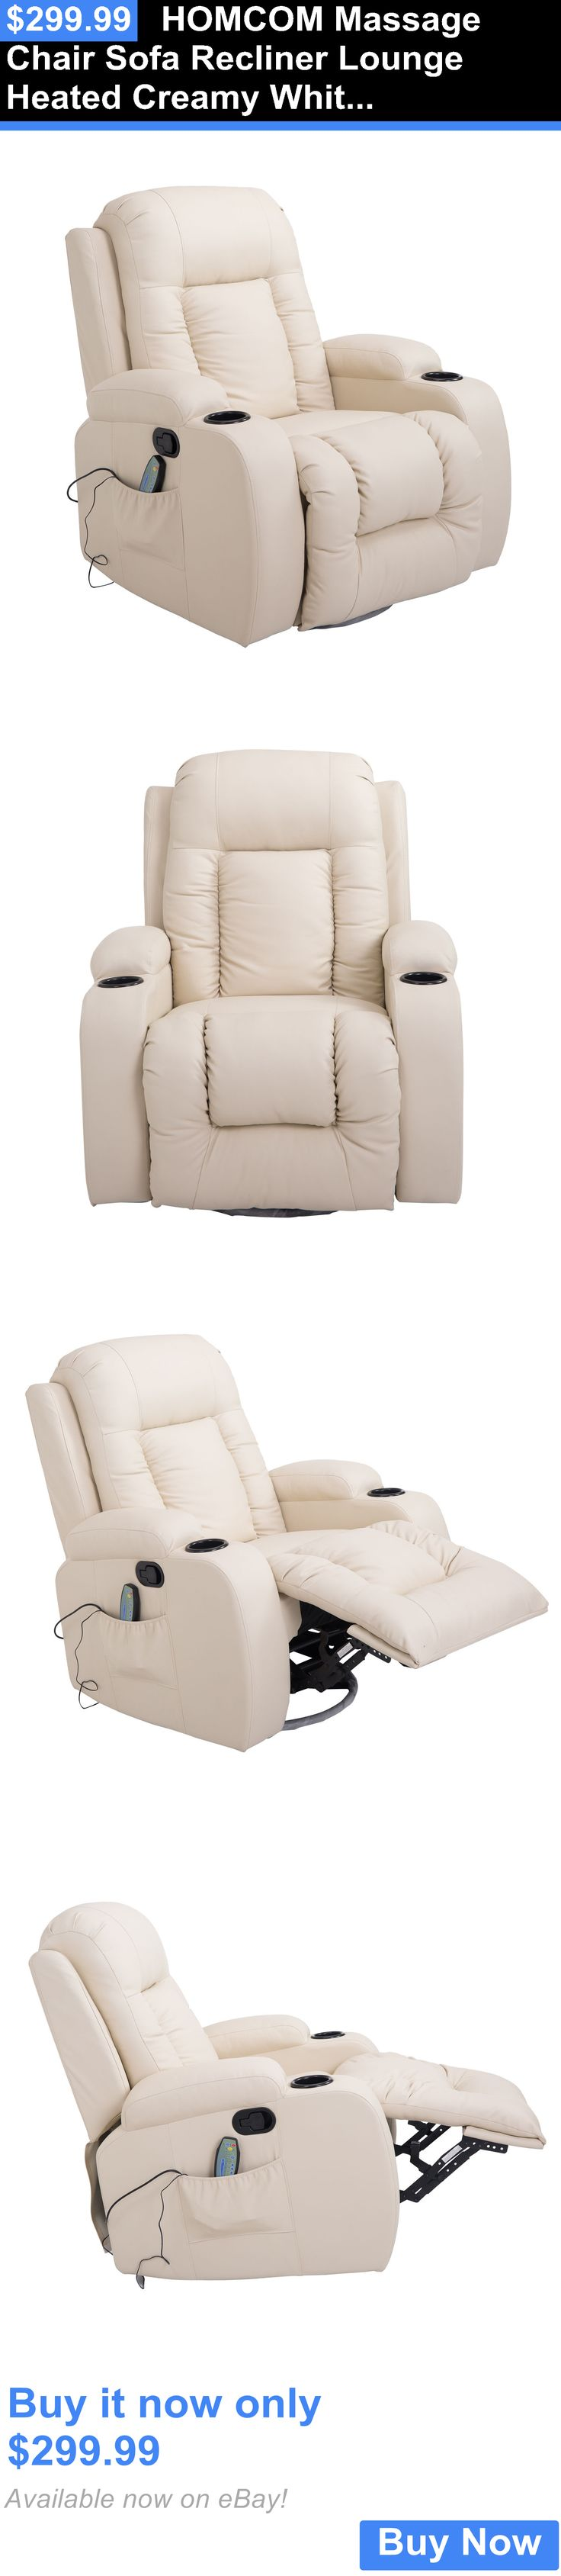 Electric Massage Chairs: Homcom Massage Chair Sofa Recliner Lounge Heated Creamy White Deluxe Armchair BUY IT NOW ONLY: $299.99